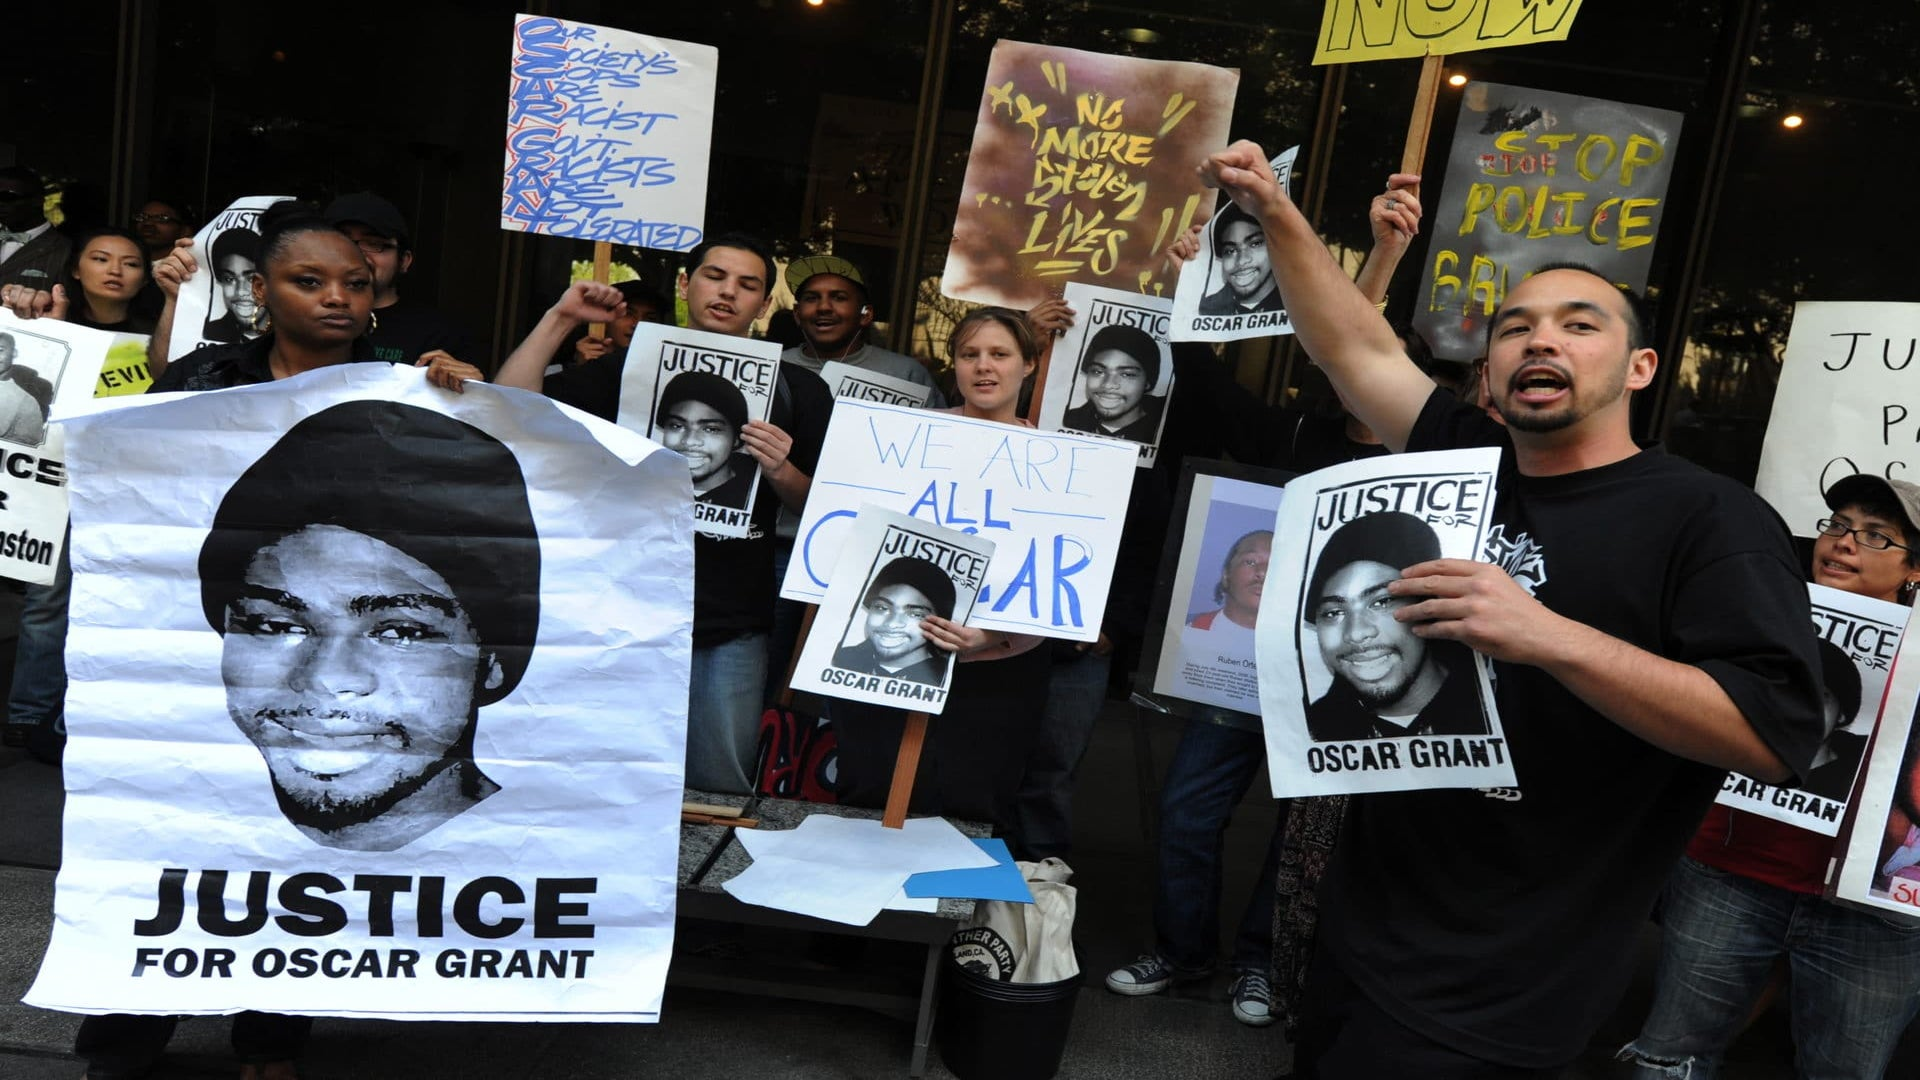 Oscar Grant Remembered At Fruitvale Station Vigil, 10 Years After Shooting Death